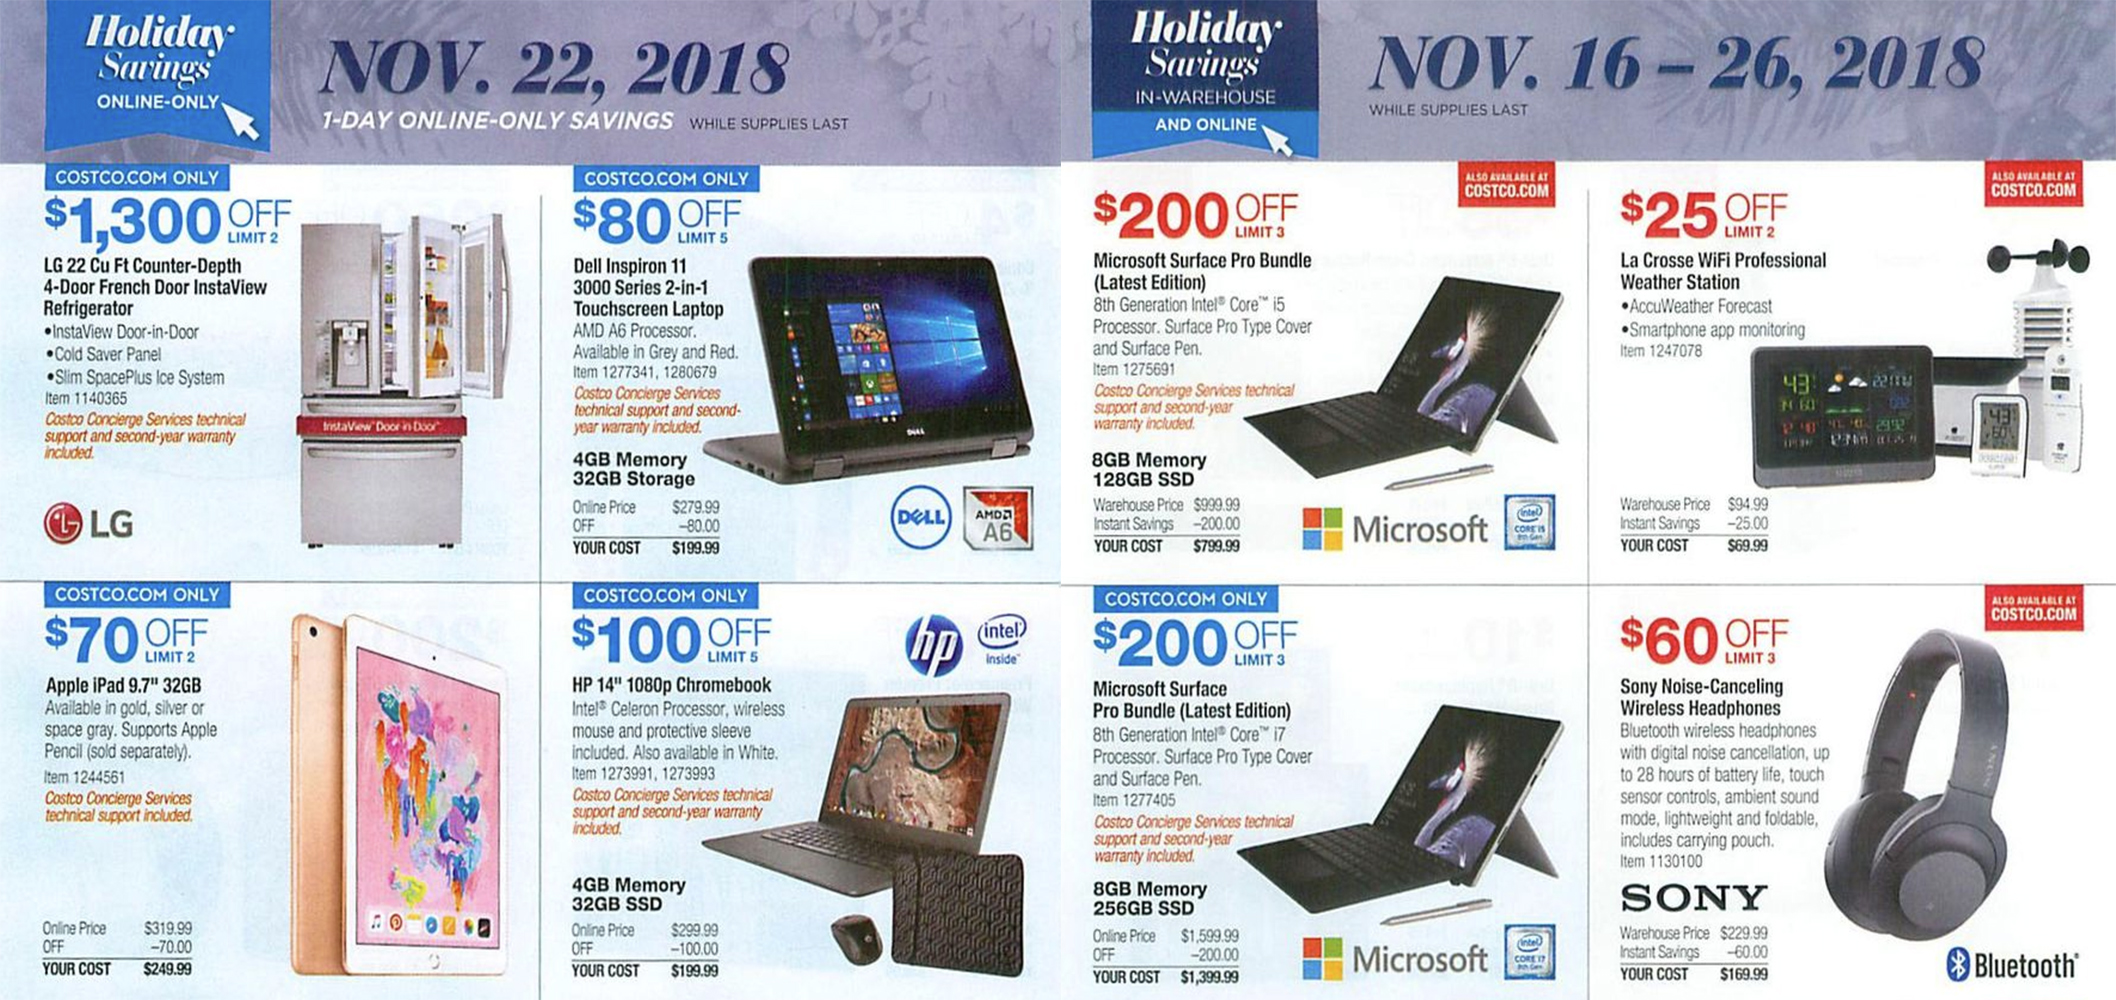 Costco Black Friday ad leak reveals first look at this year's hottest deals